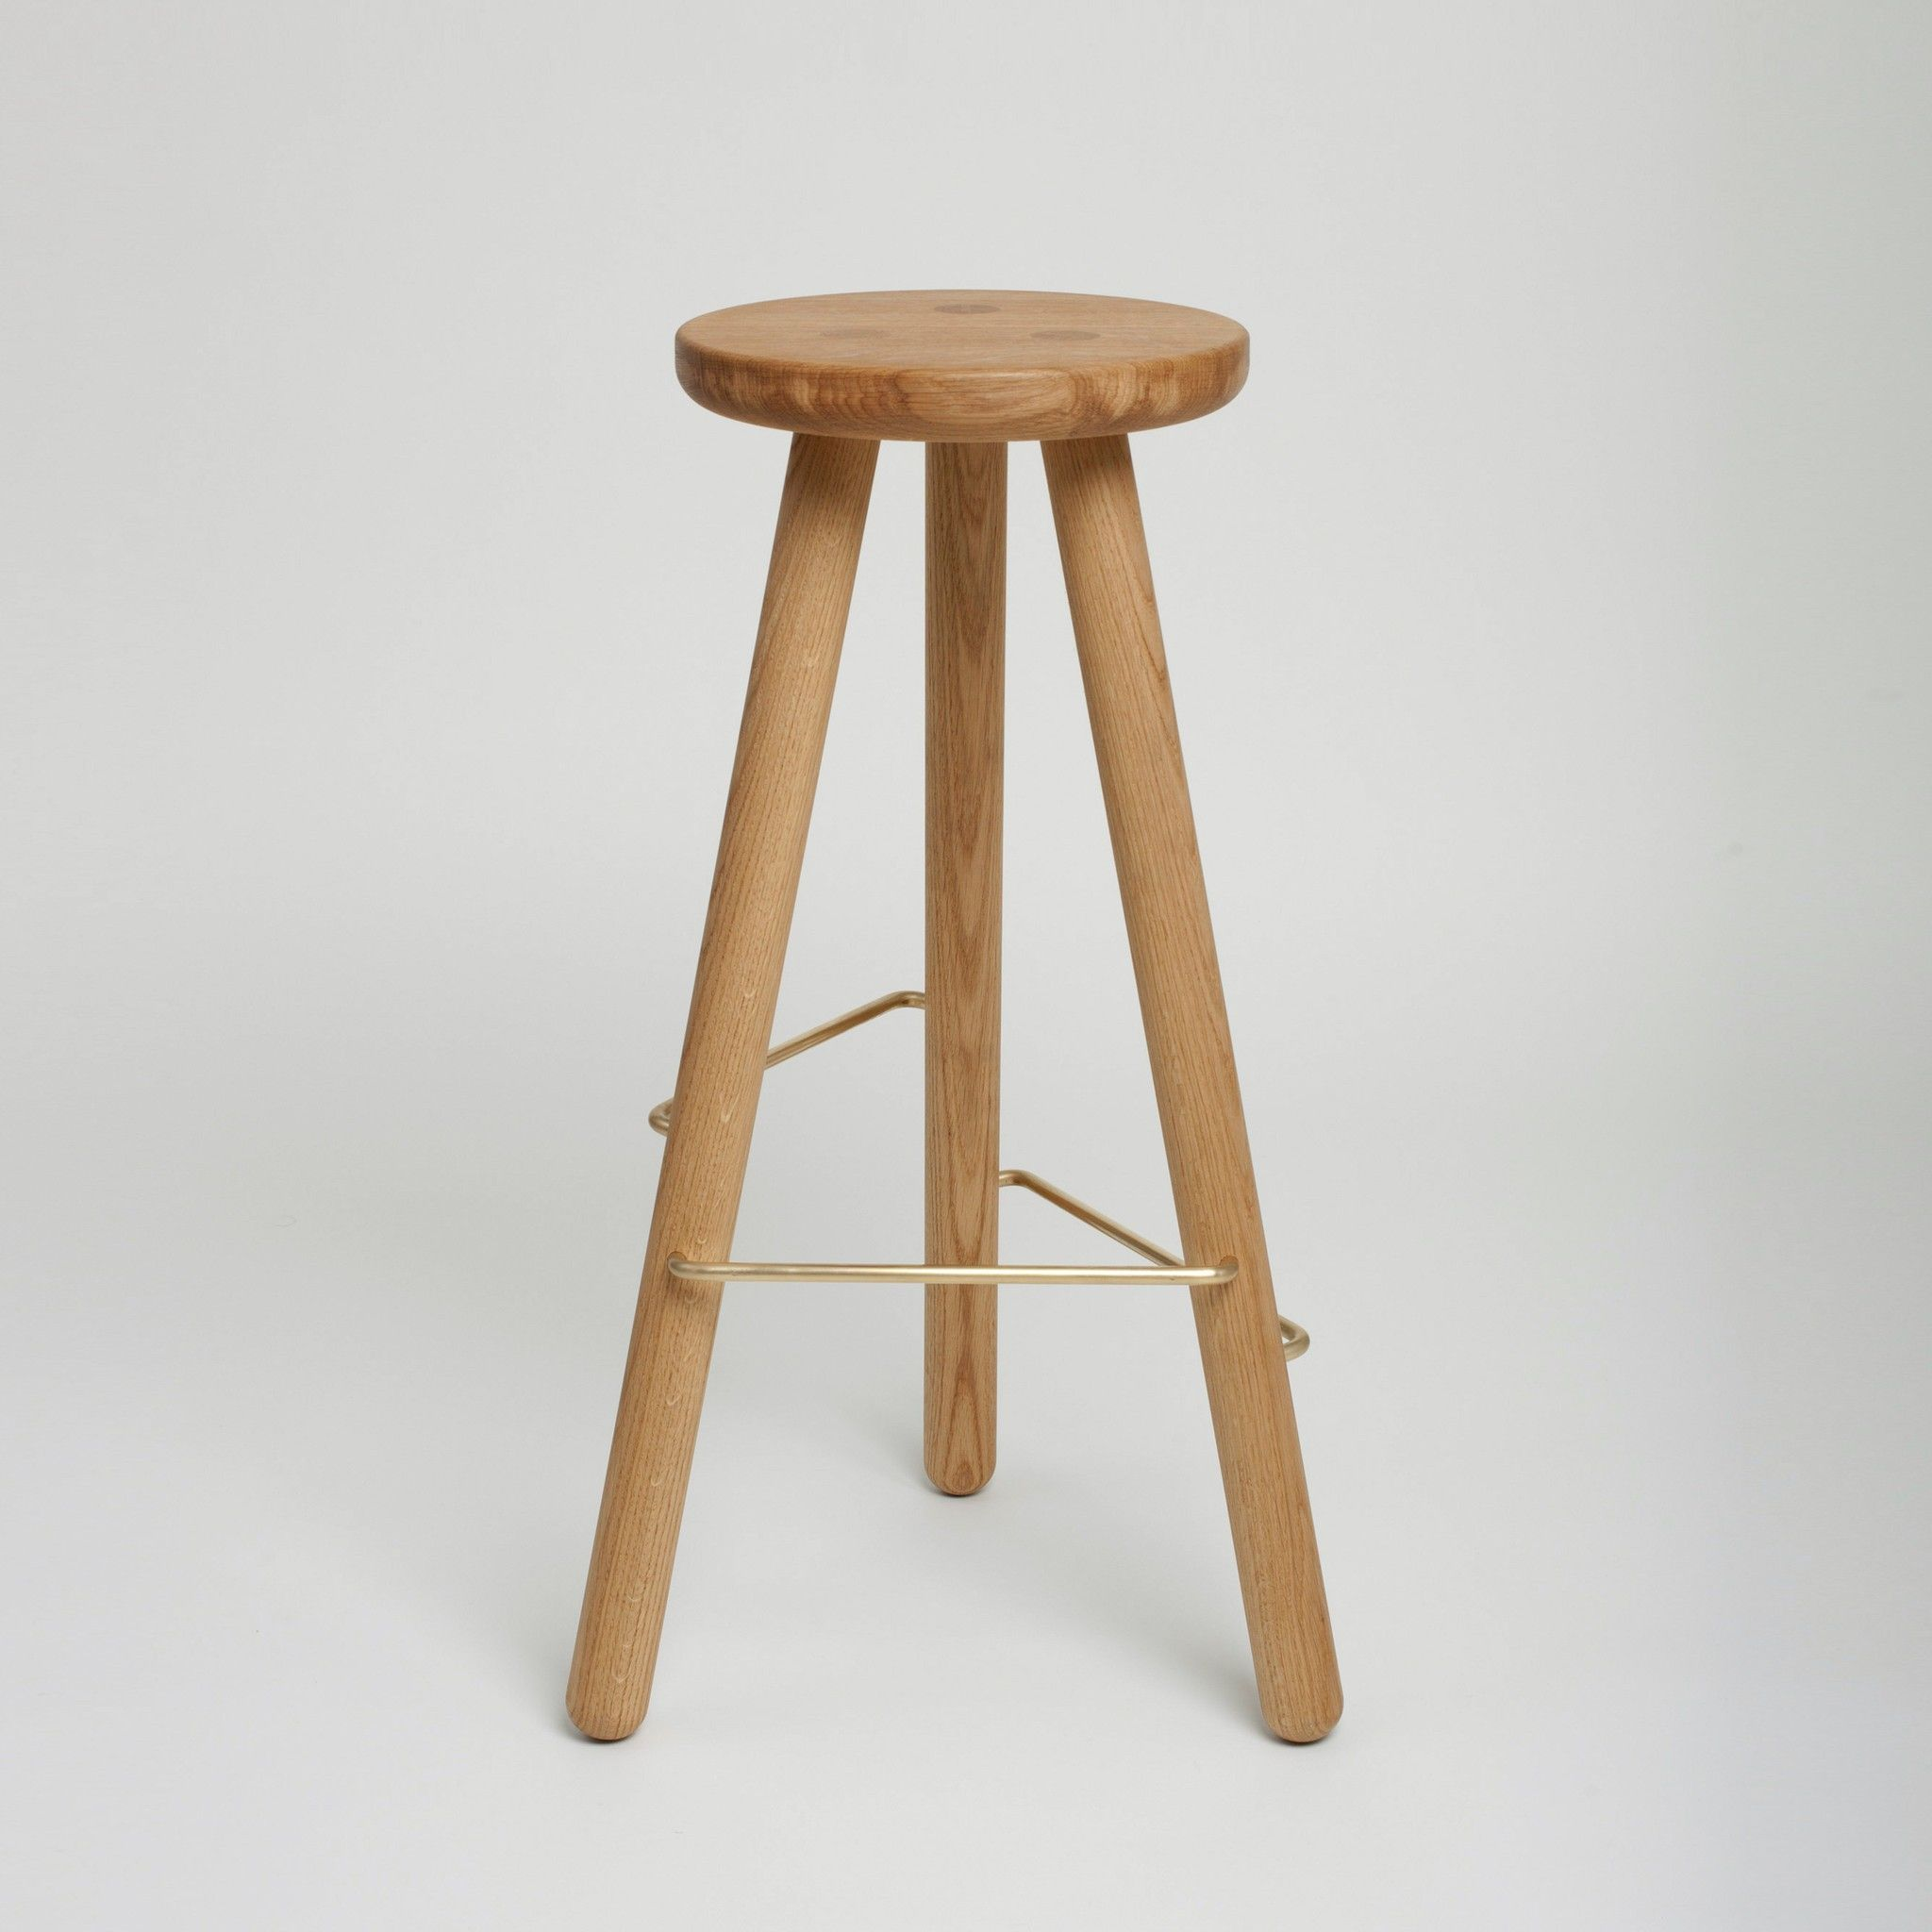 Country Light Oak Wood Bar Stool With Round Wooden Seats Plus Wooden